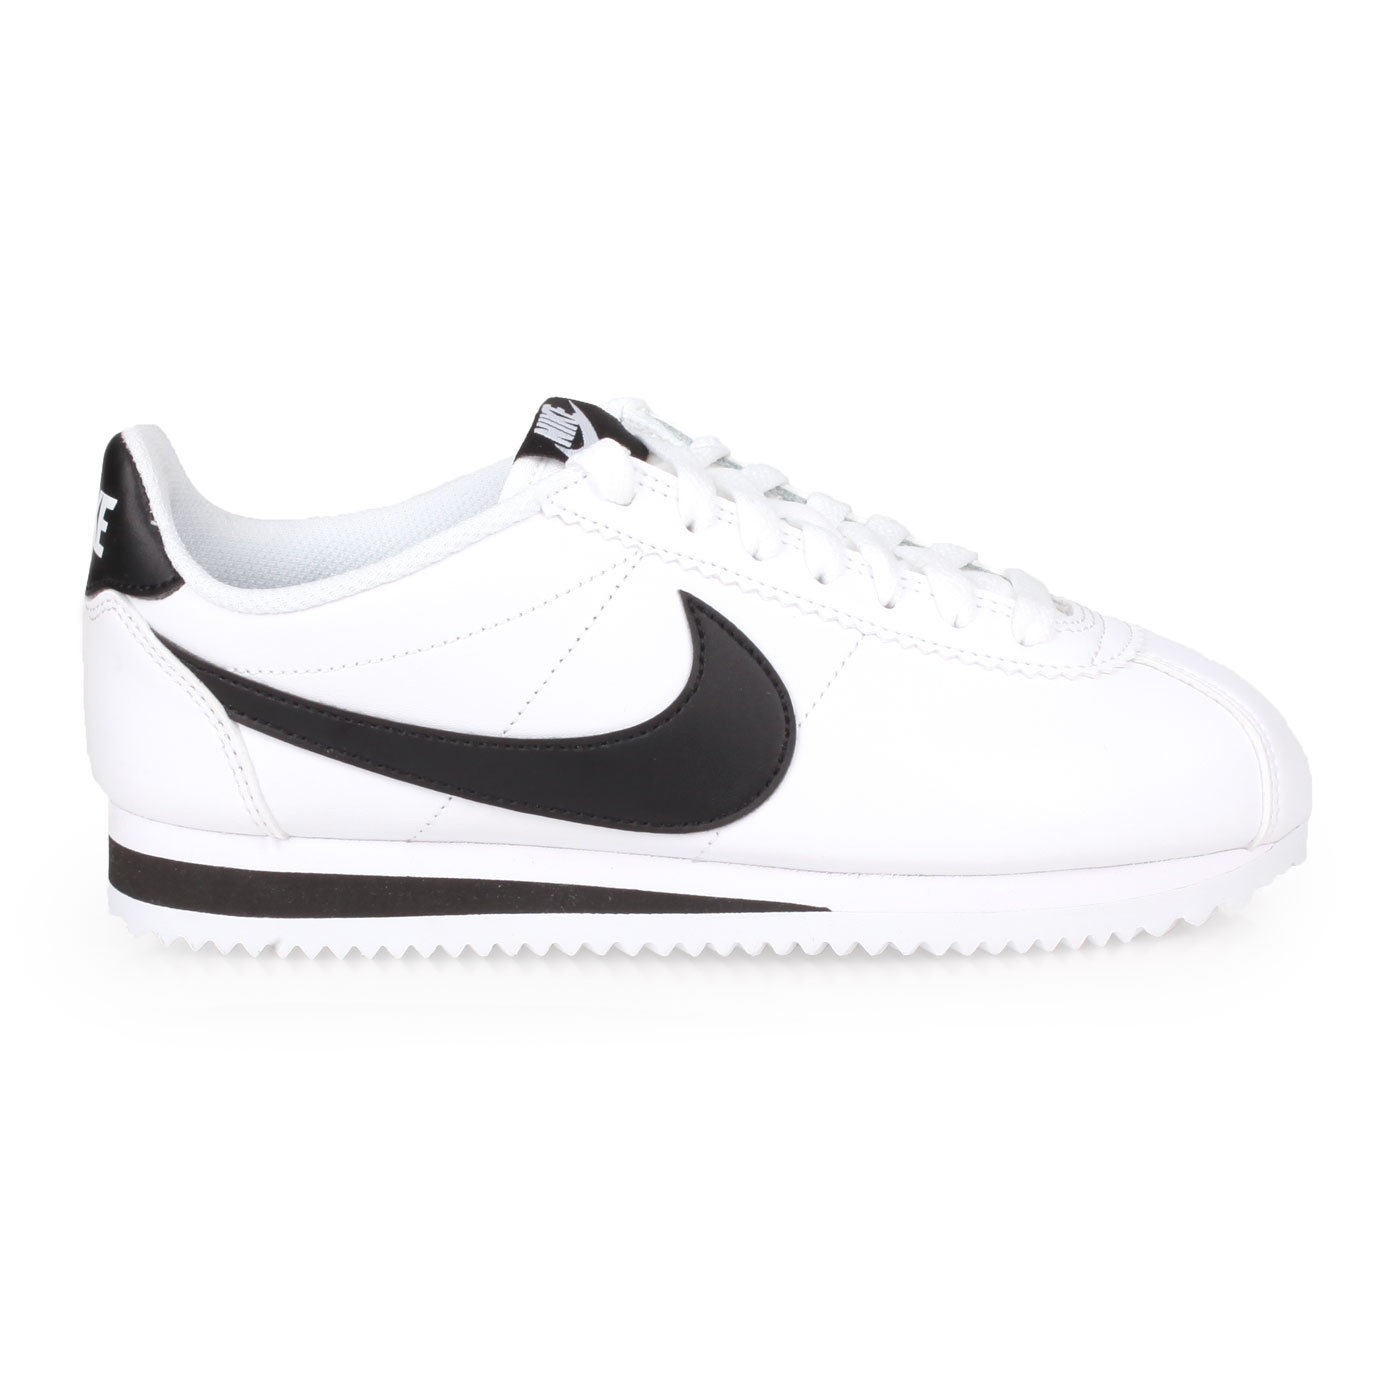 NIKE 女款休閒鞋  @WMNS CLASSIC CORTEZ LEATHER@807471101 - 白黑